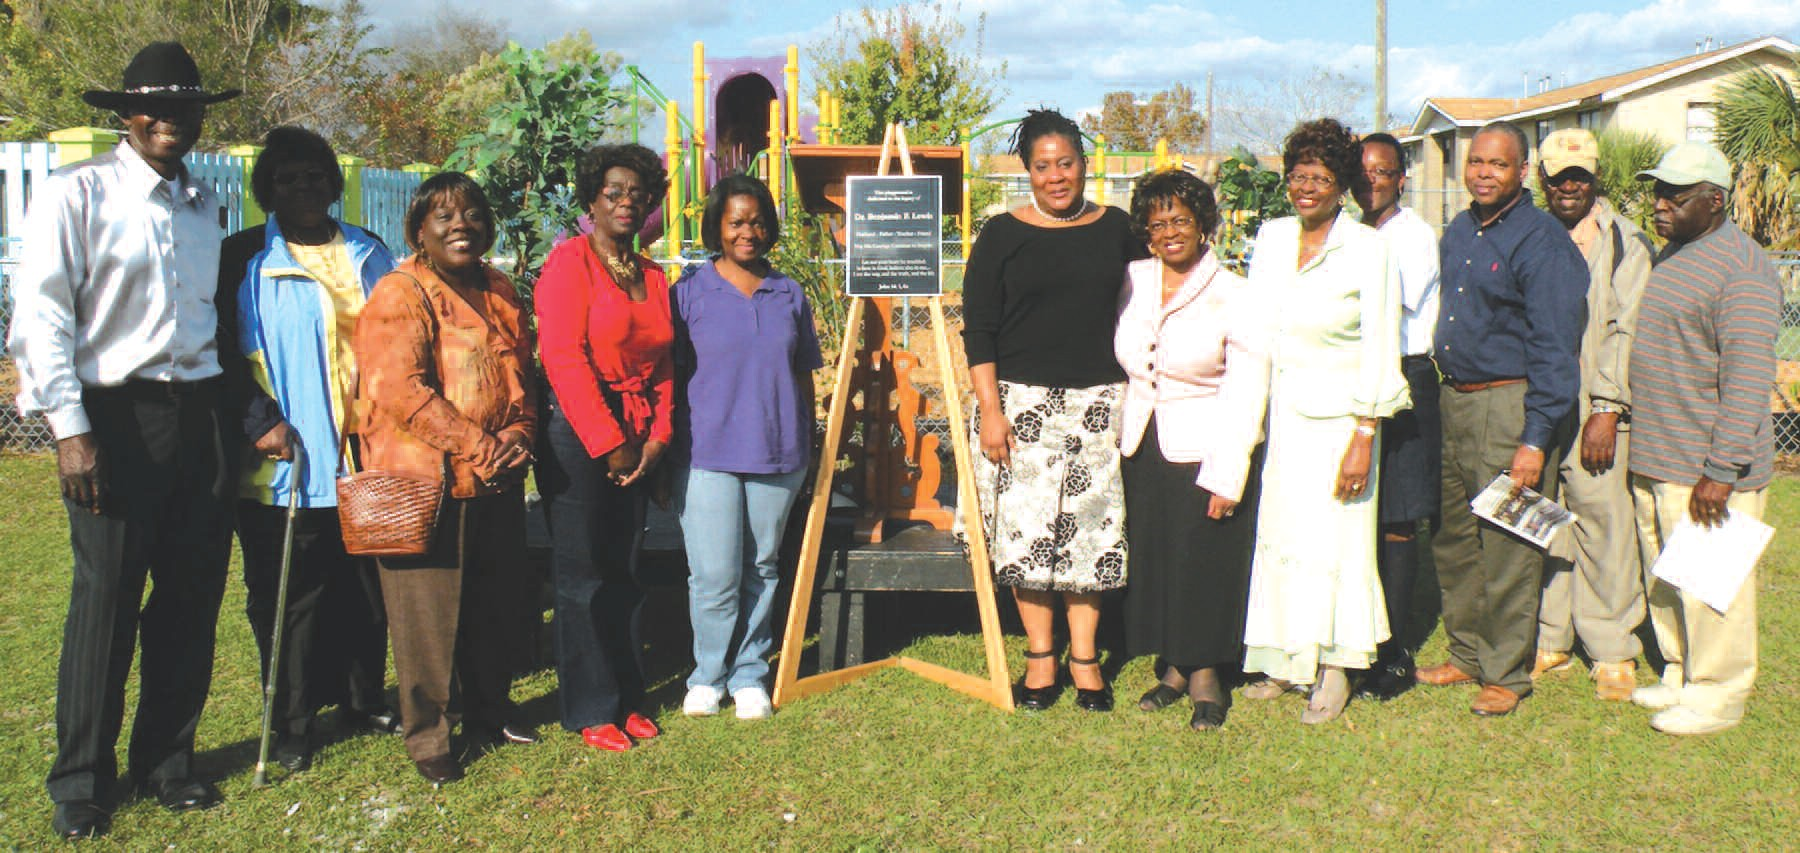 Family members of Ben Lewis pose for a photo during Friday's dedication